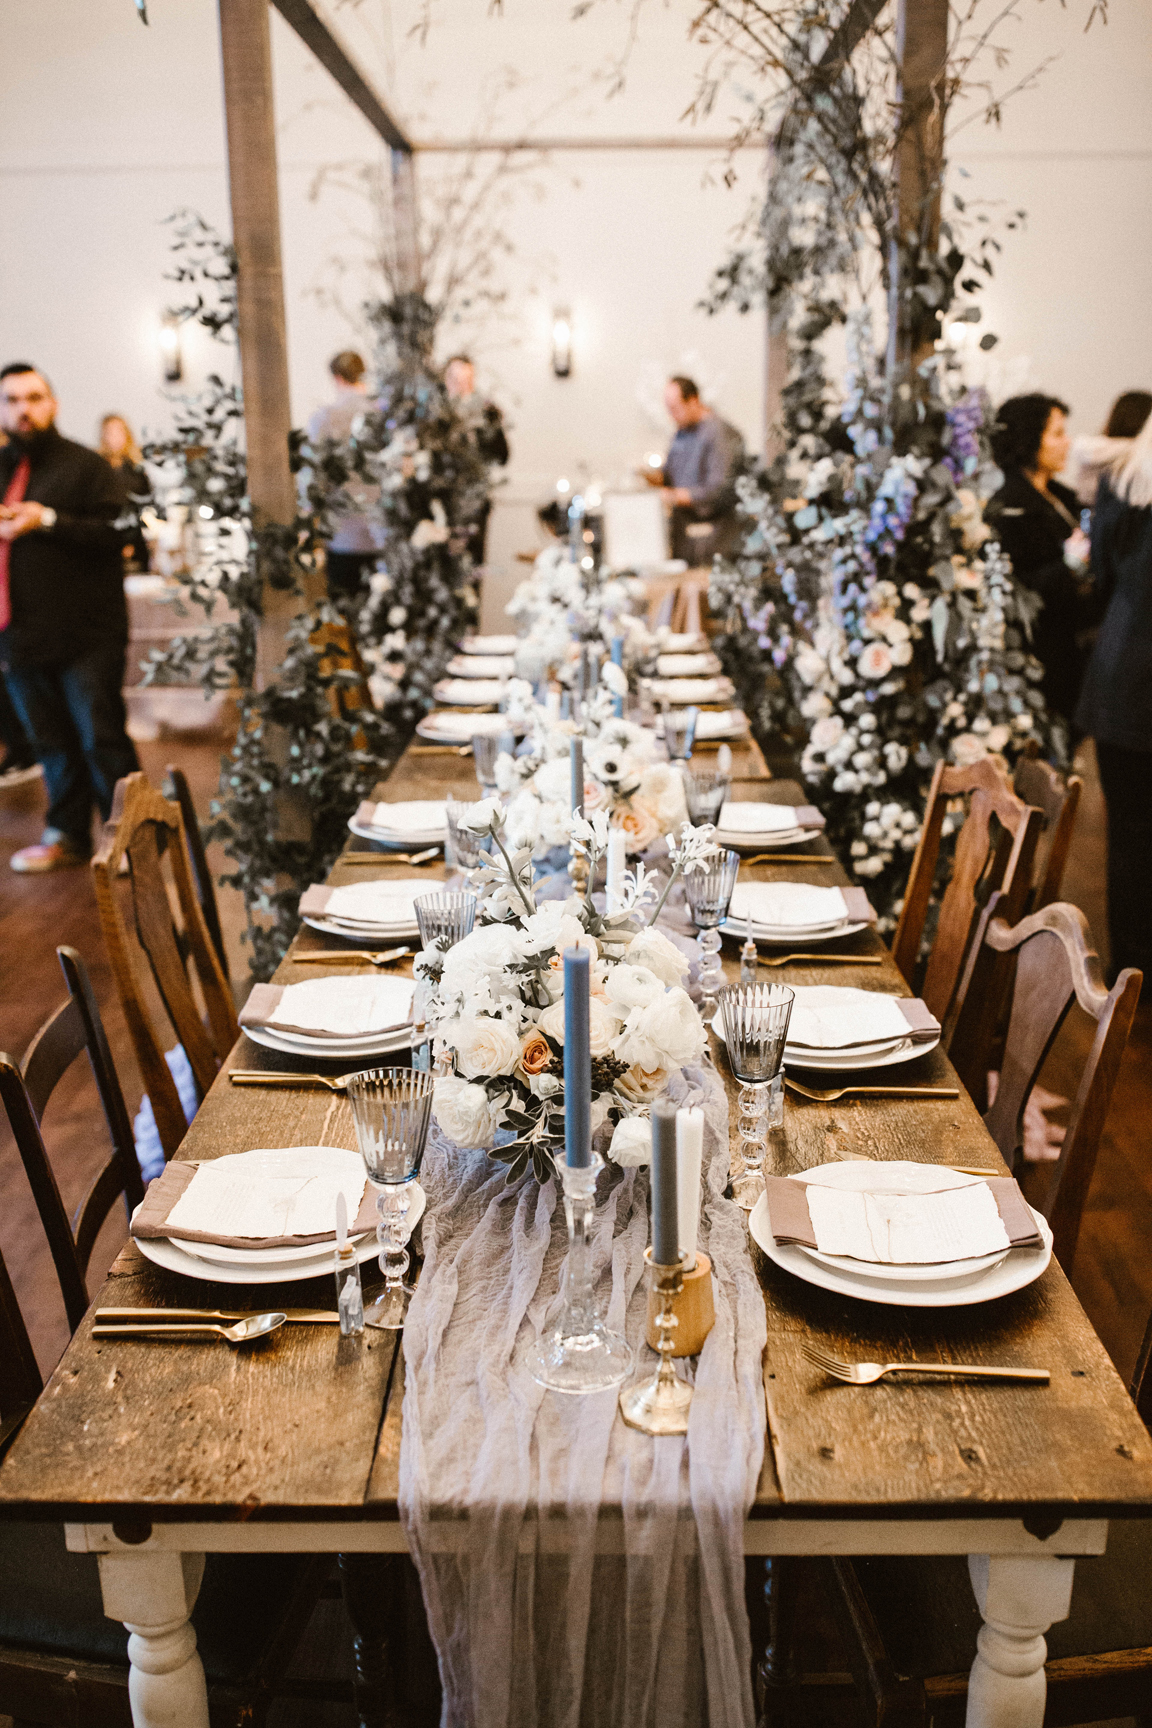 Columbia+Winery_Woodinville_2017_Weddings+In+Woodinville229.jpg